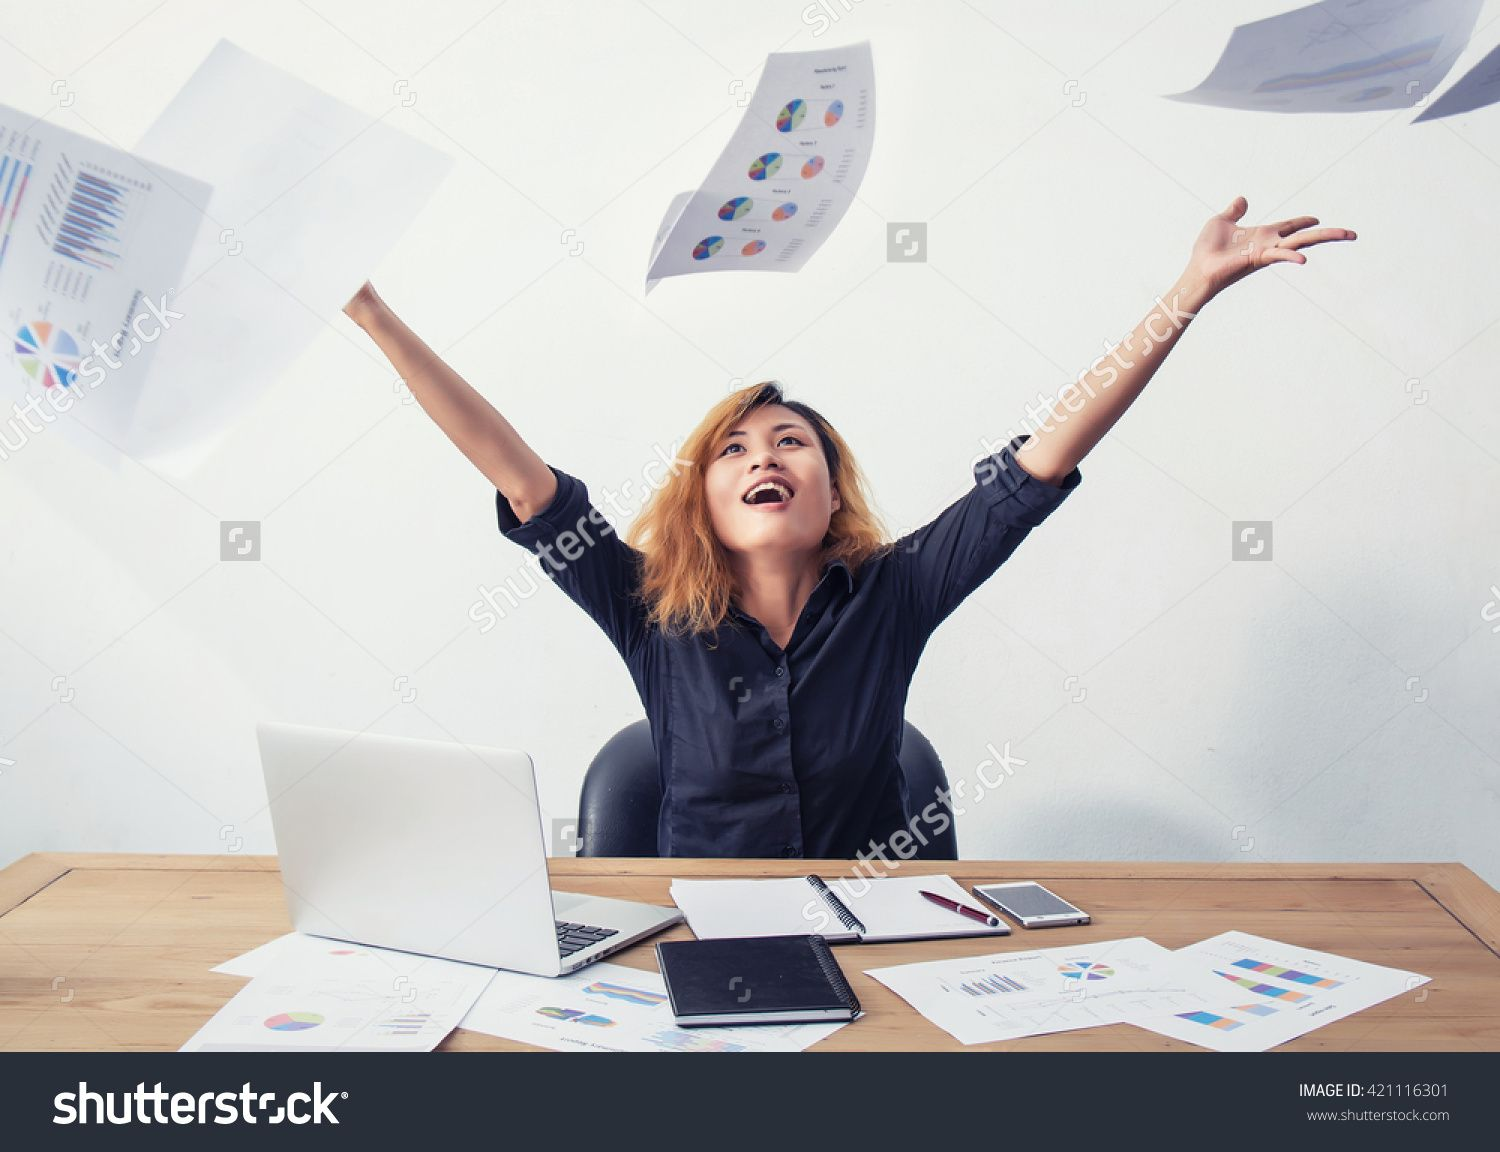 A Happy And Successful Business Woman With Her Arms Raised Working